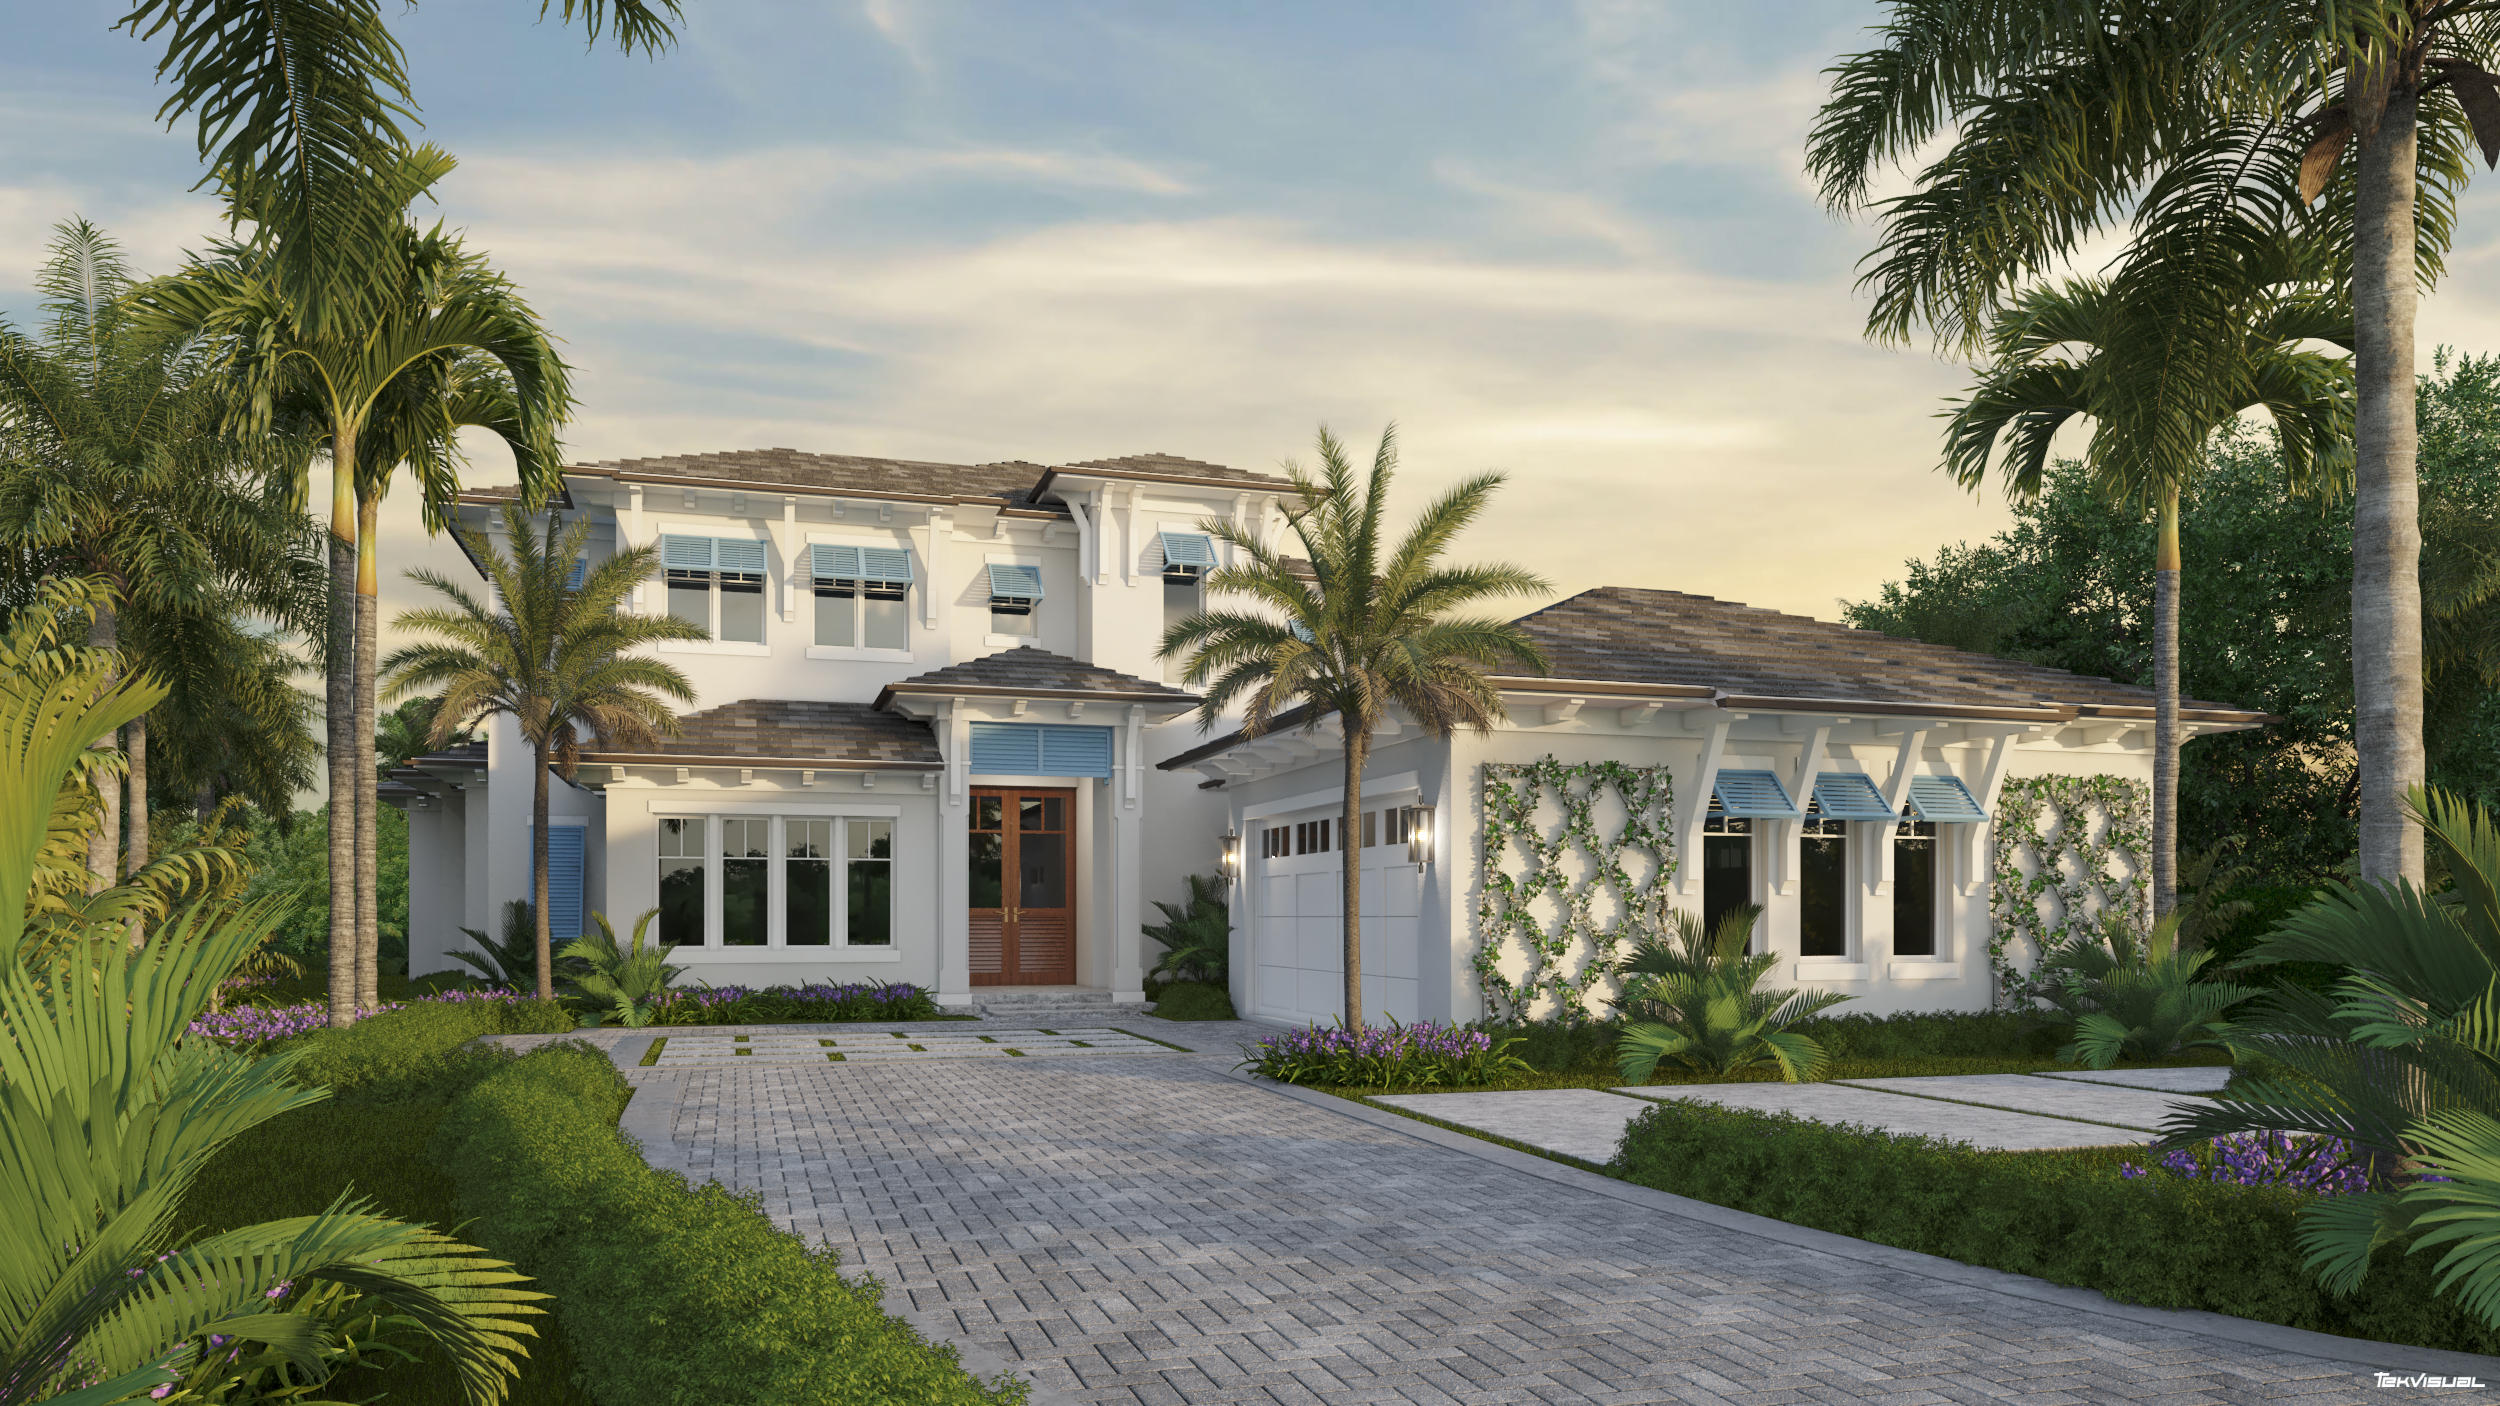 New Home for sale at 130 Waters Edge Drive in Jupiter